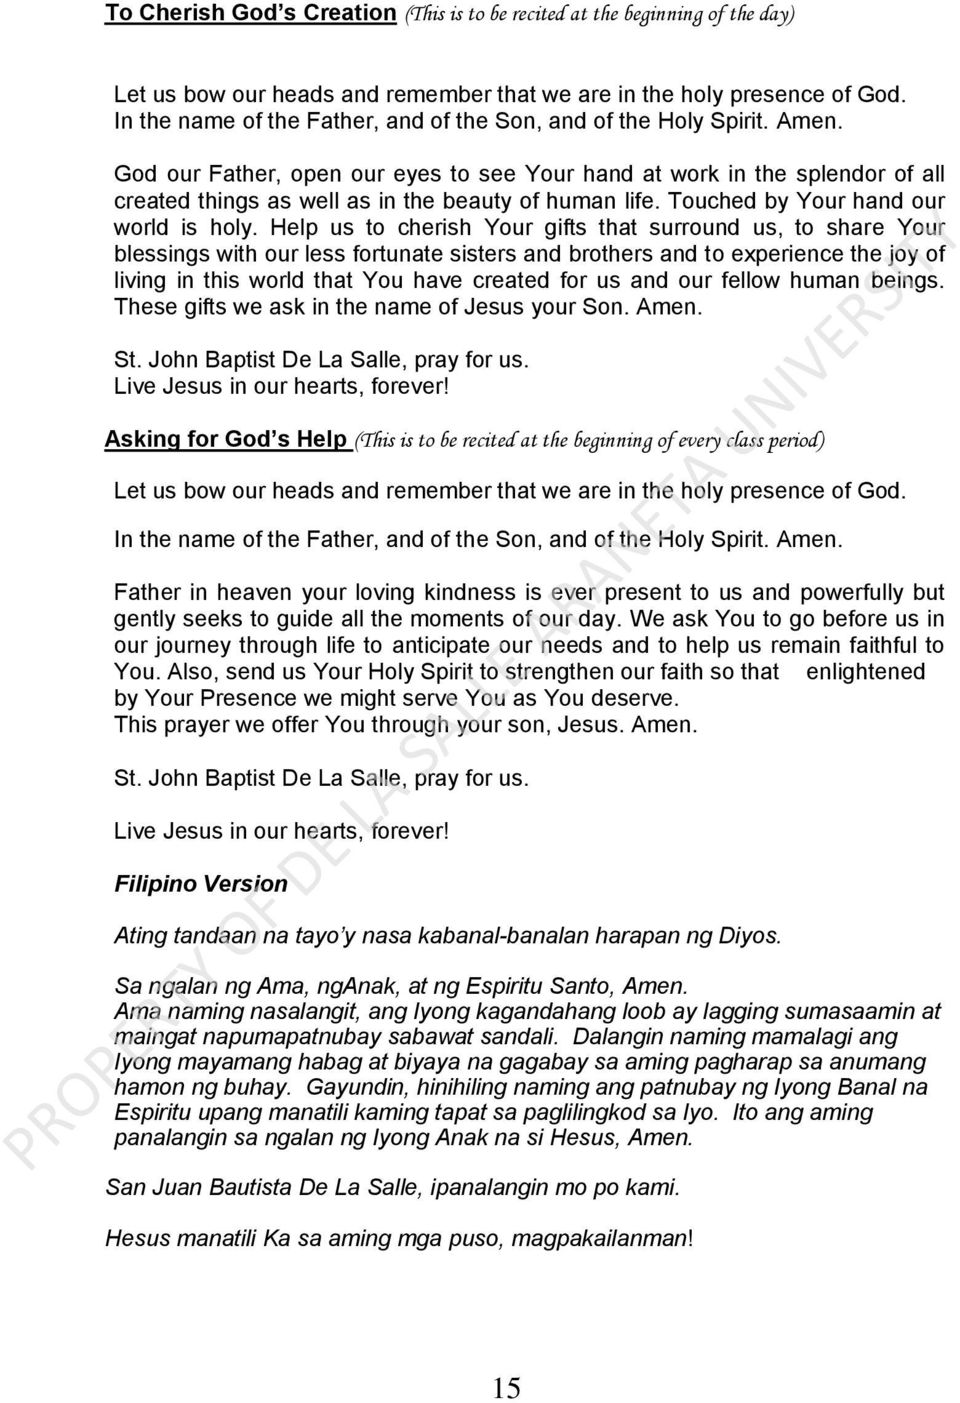 Chapter 1 Introduction A St John Baptist De La Salle The Founder Hand Towel Anak Character God Our Father Open Eyes To See Your At Work In Splendor